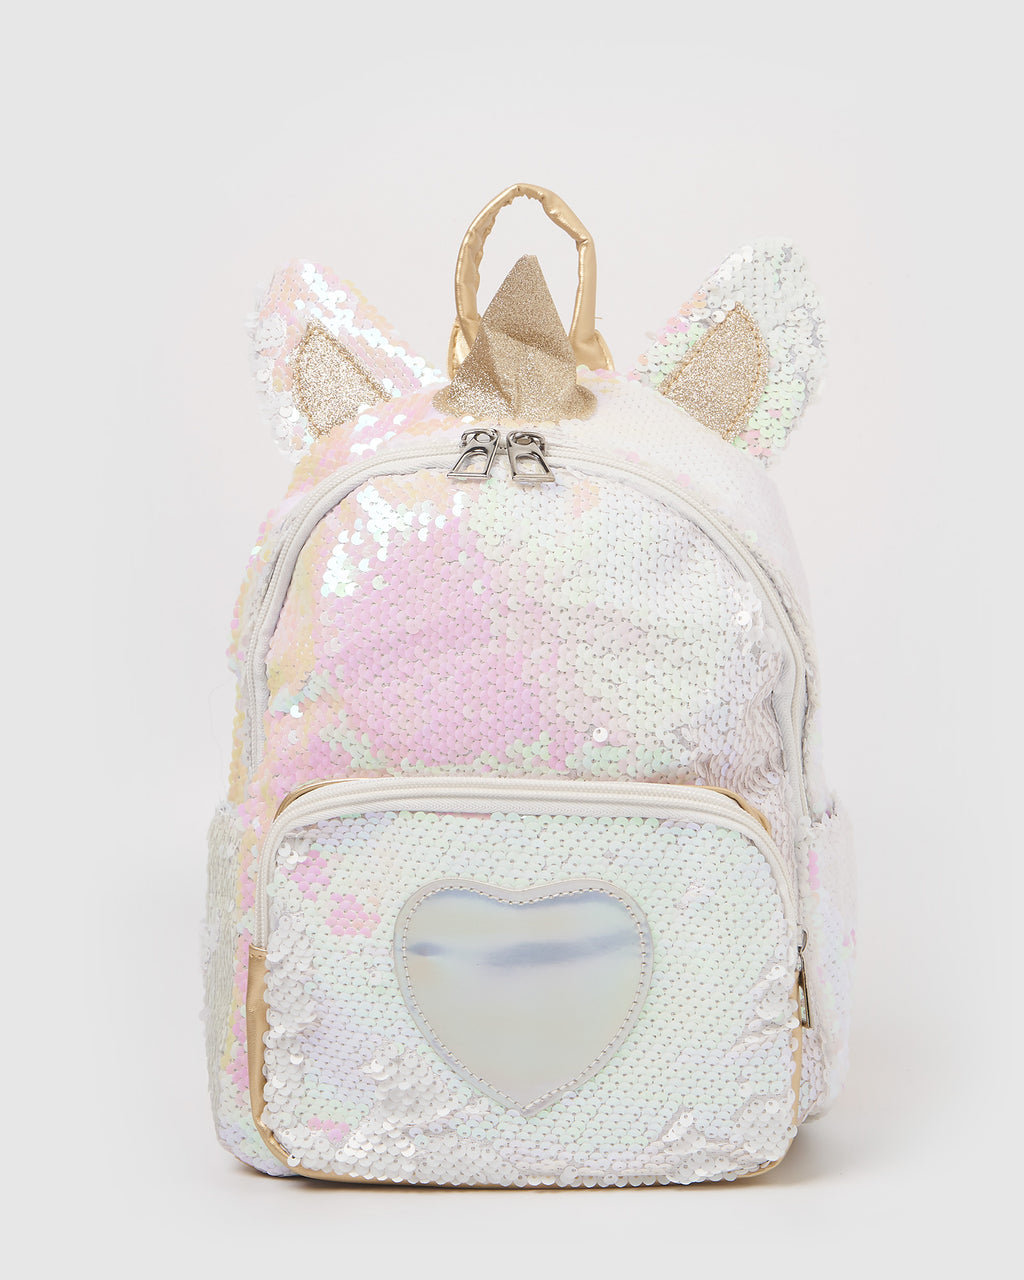 Izoa Kids Love Unicorn Backpack Iridescent Gold